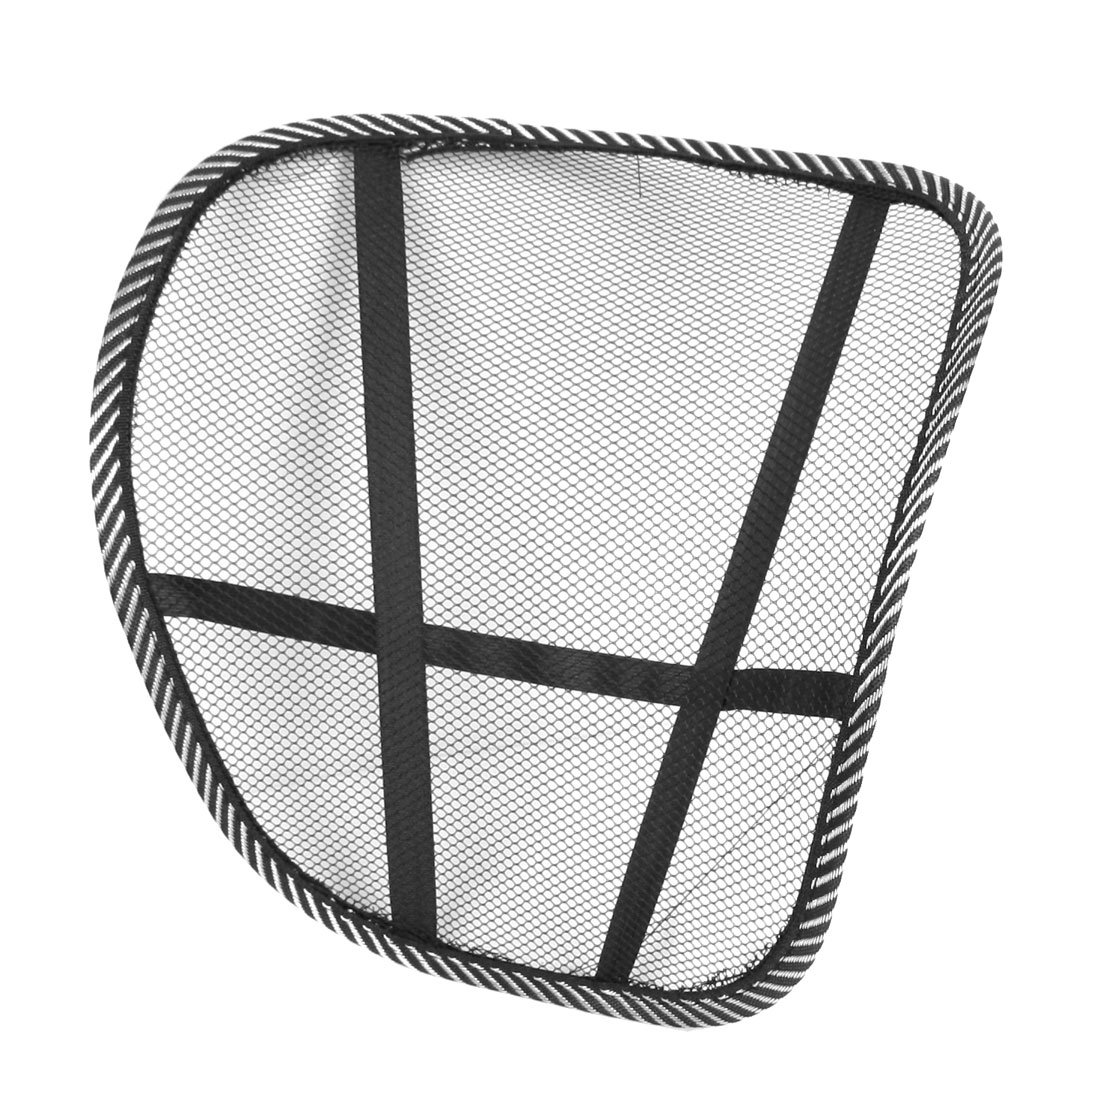 Amazon Uxcell Home Chair Truck Car Seat Cooling Air Flow Mesh Back Rest Support Automotive